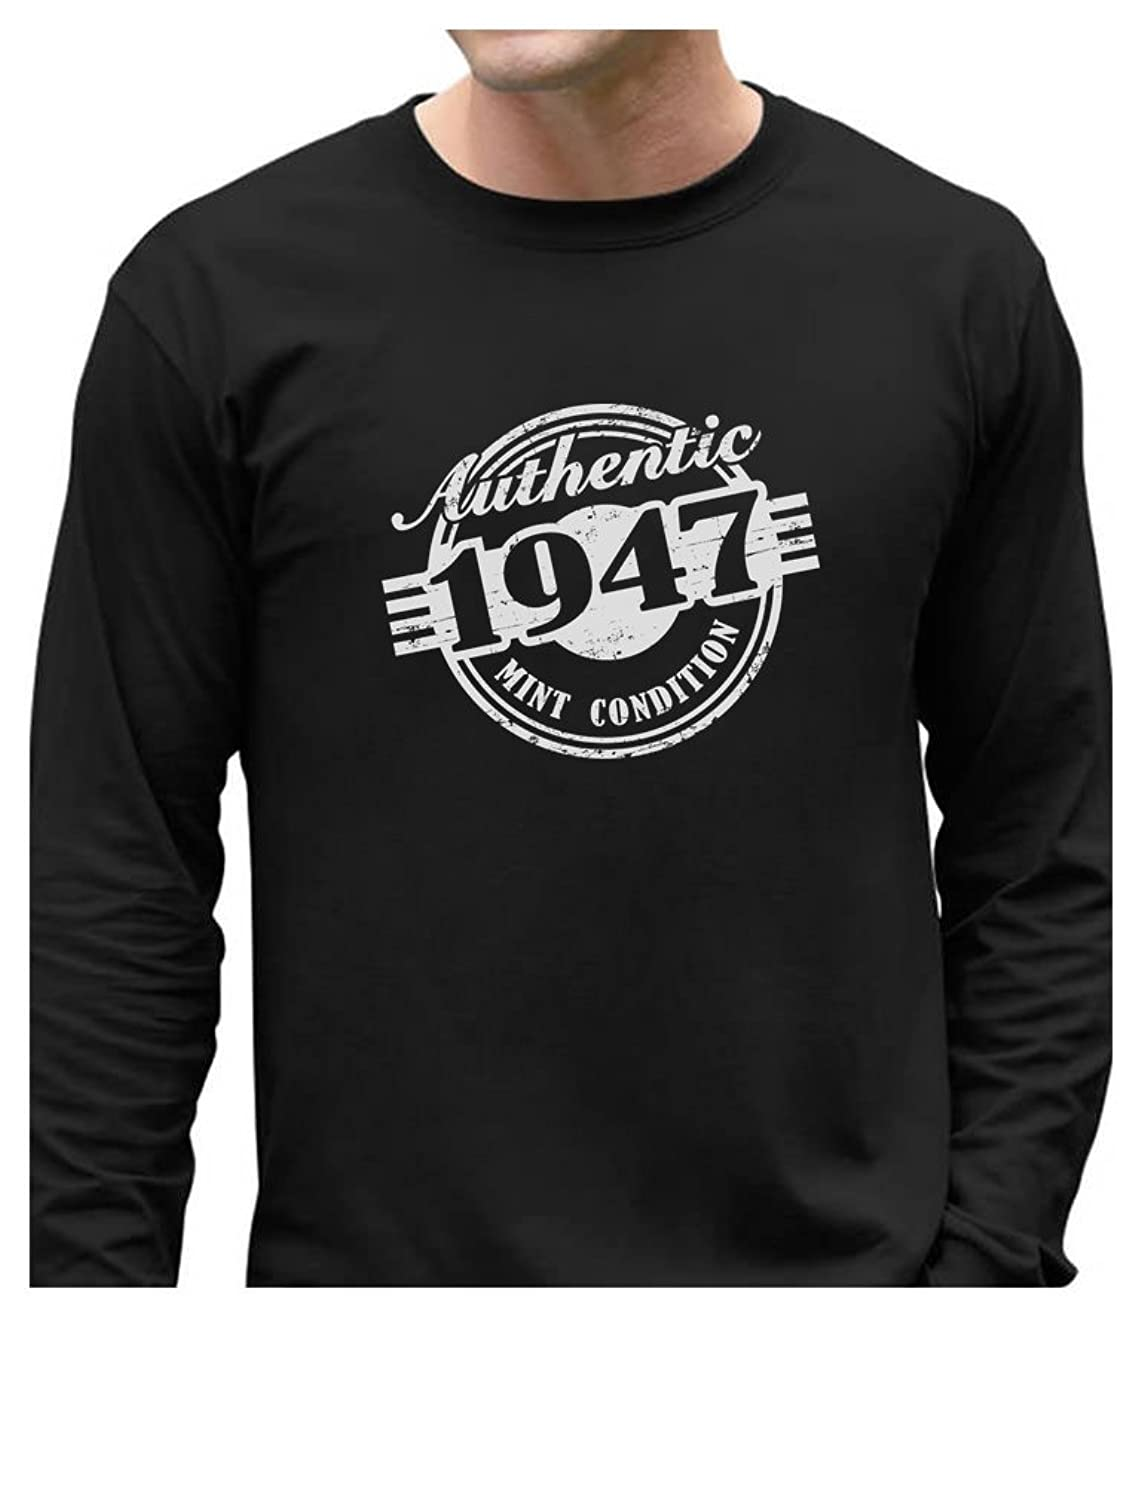 70th Birthday Gift - Authentic 1947 Mint Condition Long Sleeve T-Shirt